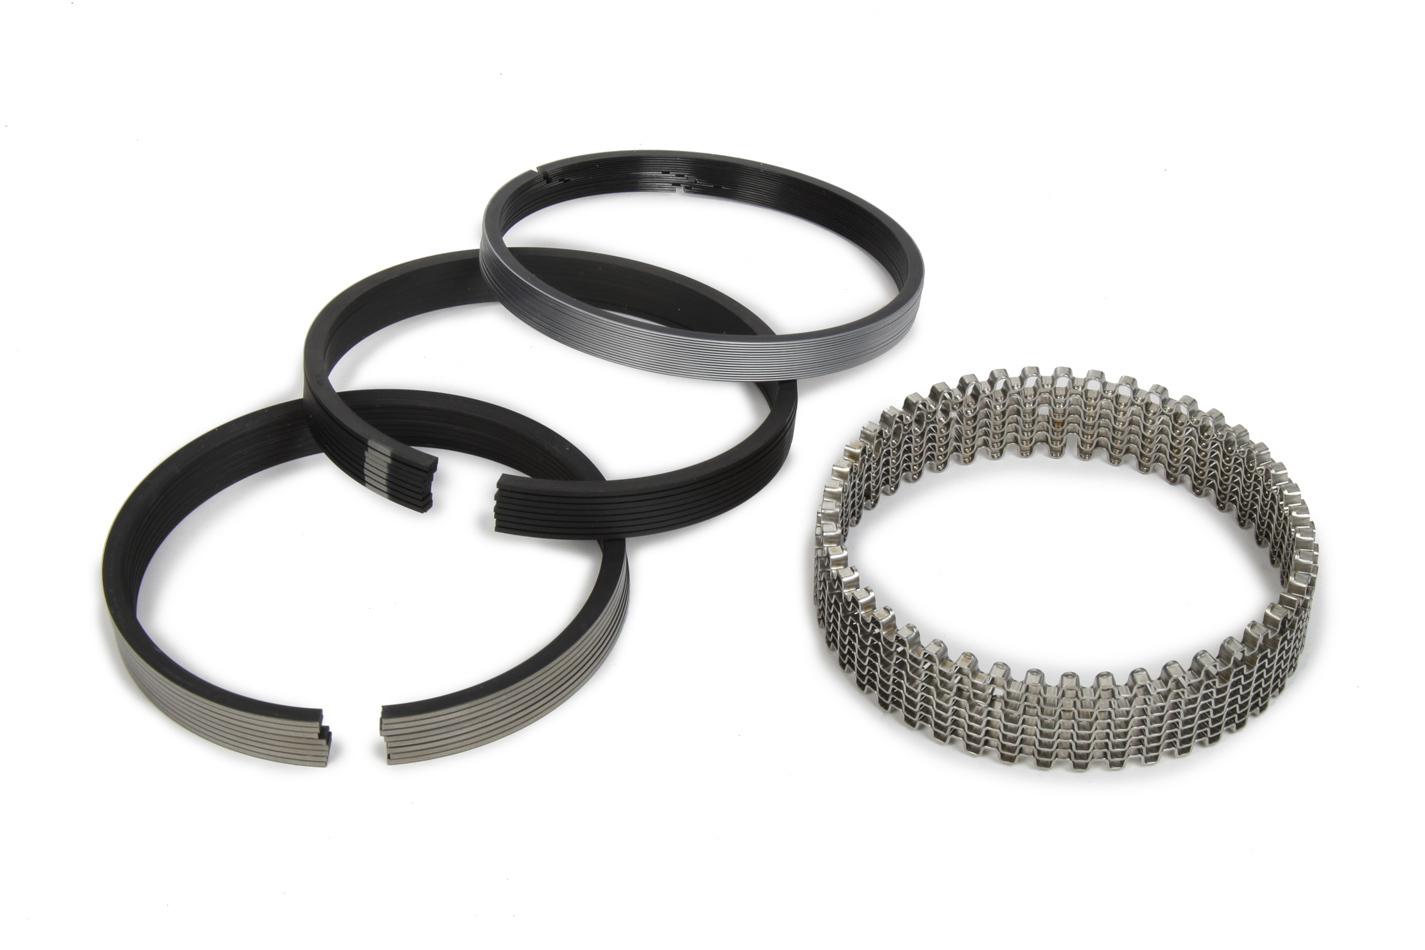 Michigan 77 315-0036.045 Piston Rings, 4.040 in Bore, File Fit, 1/16 x 1/16 x 3/16 in Thick, Standard Tension, Plasma Moly, 8 Cylinder, Kit